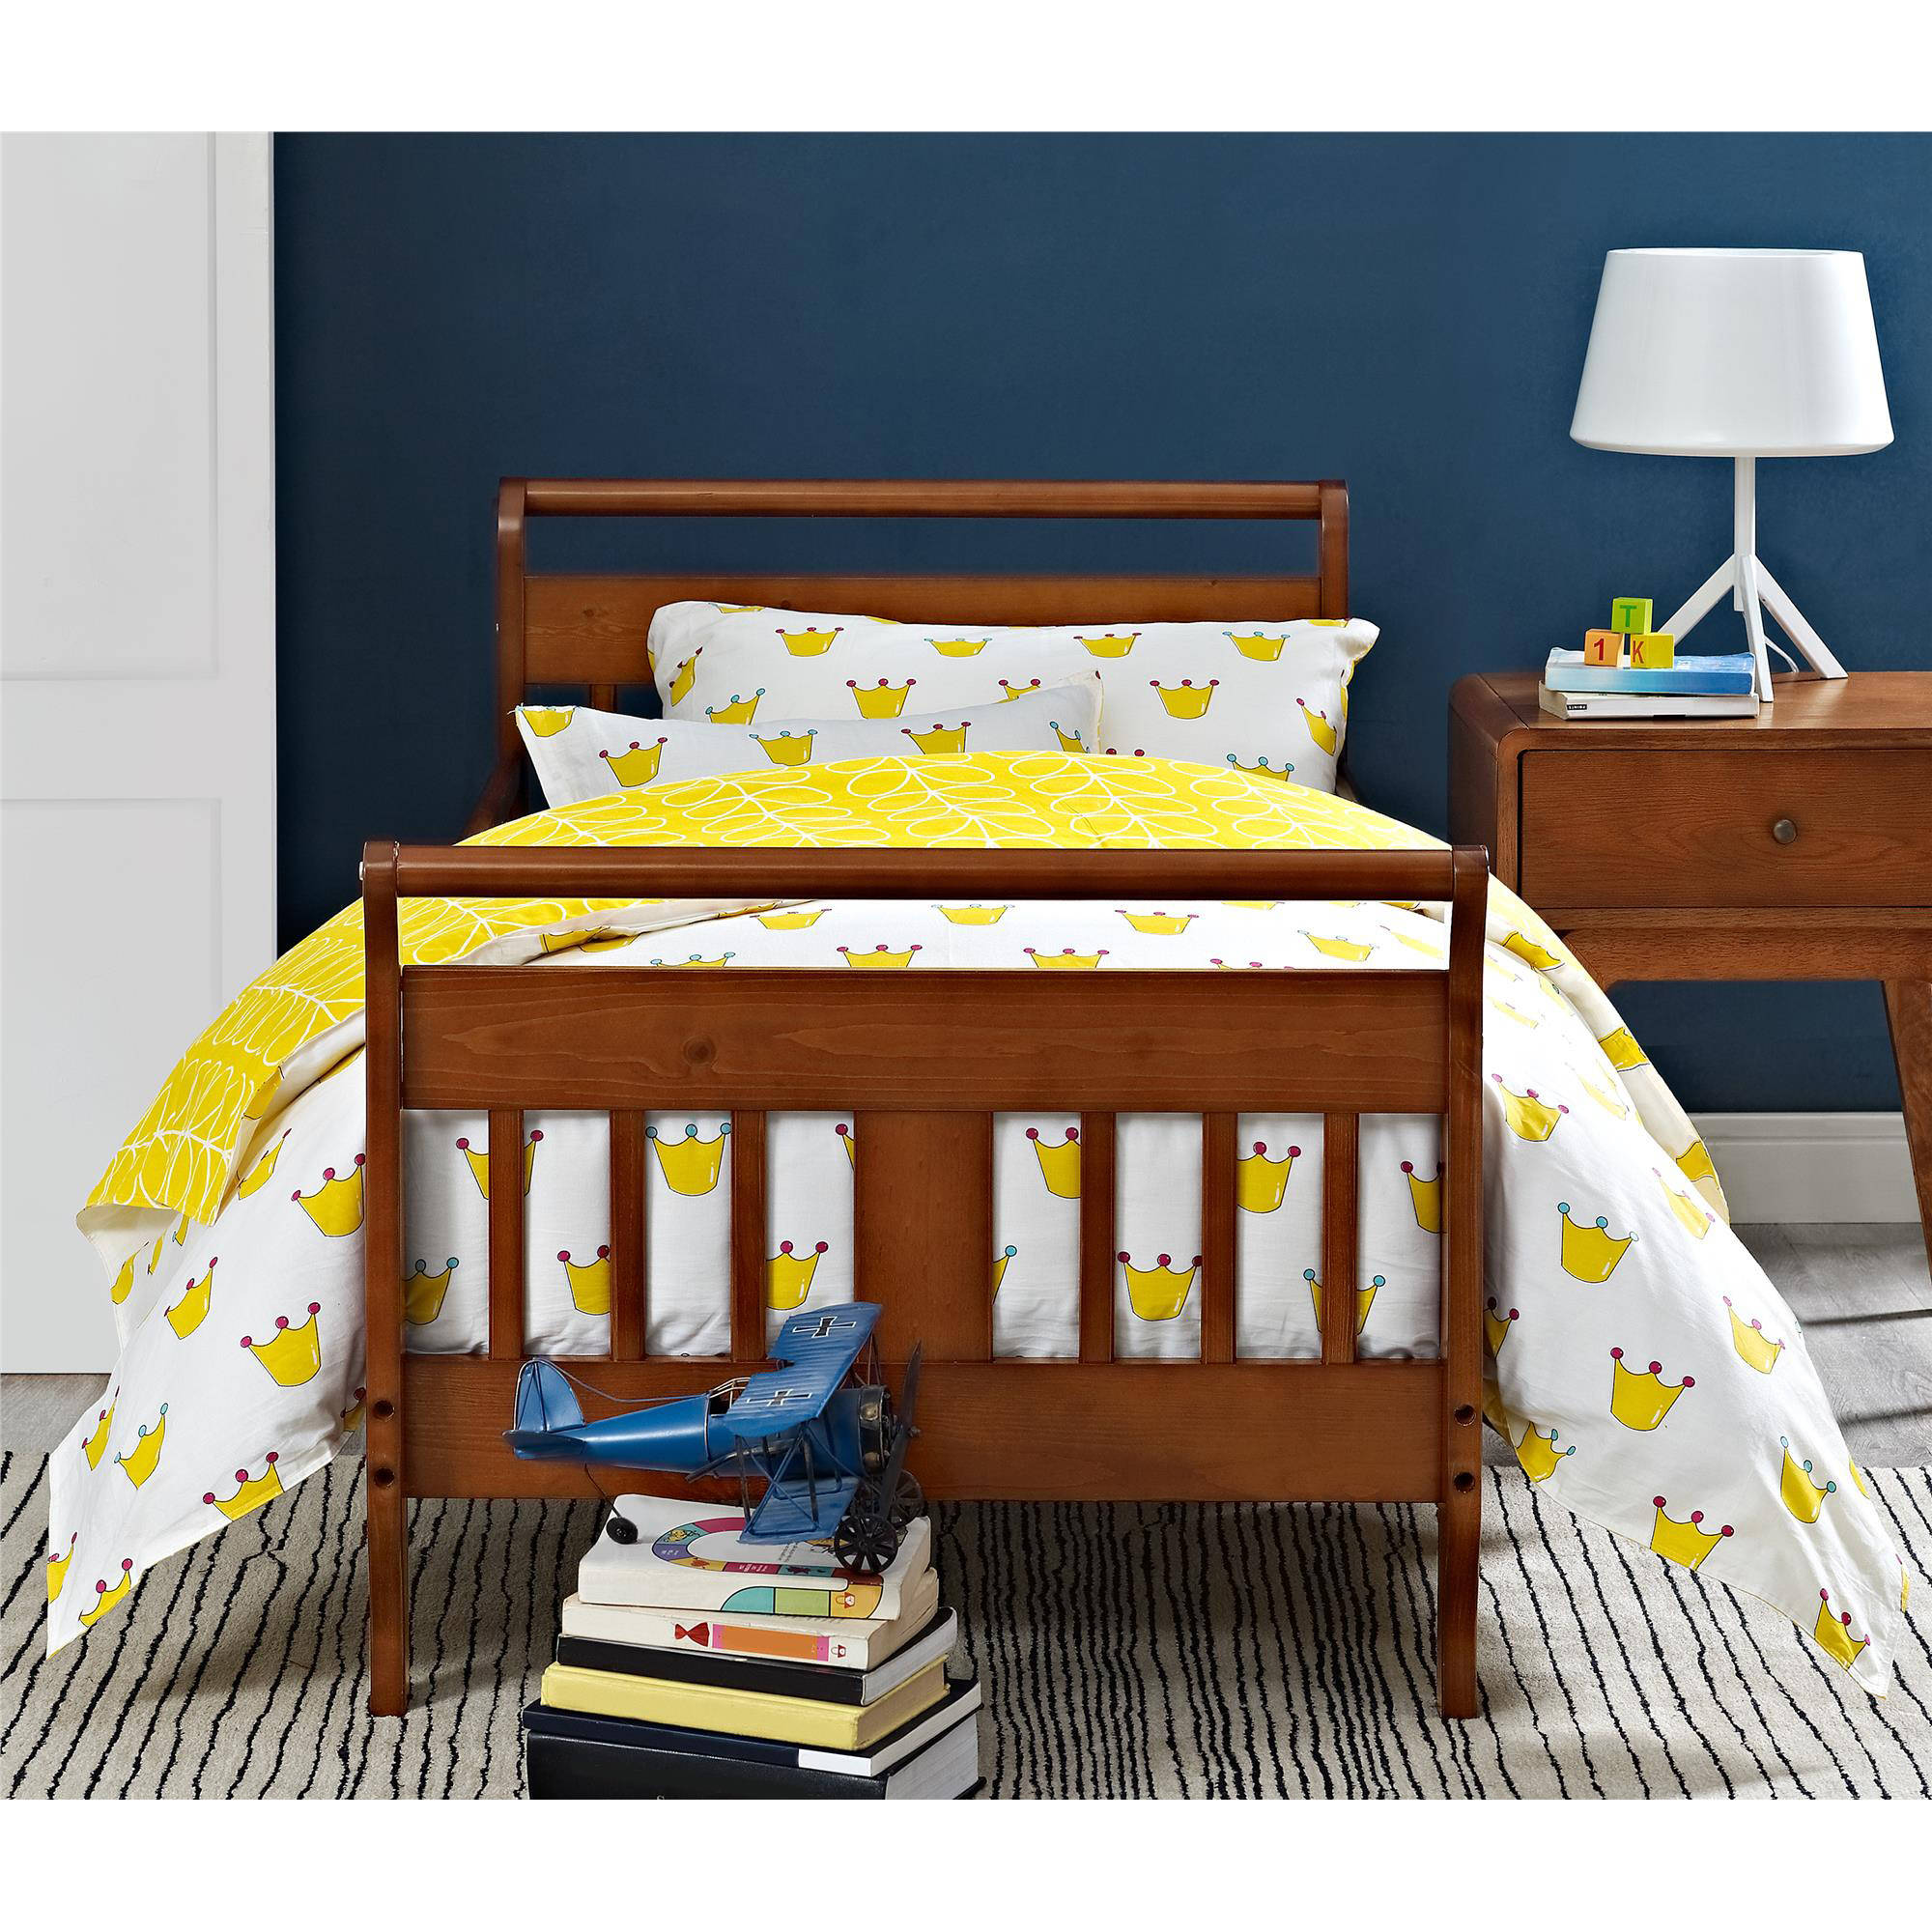 wooden furniture for kids bedroom photo - 7